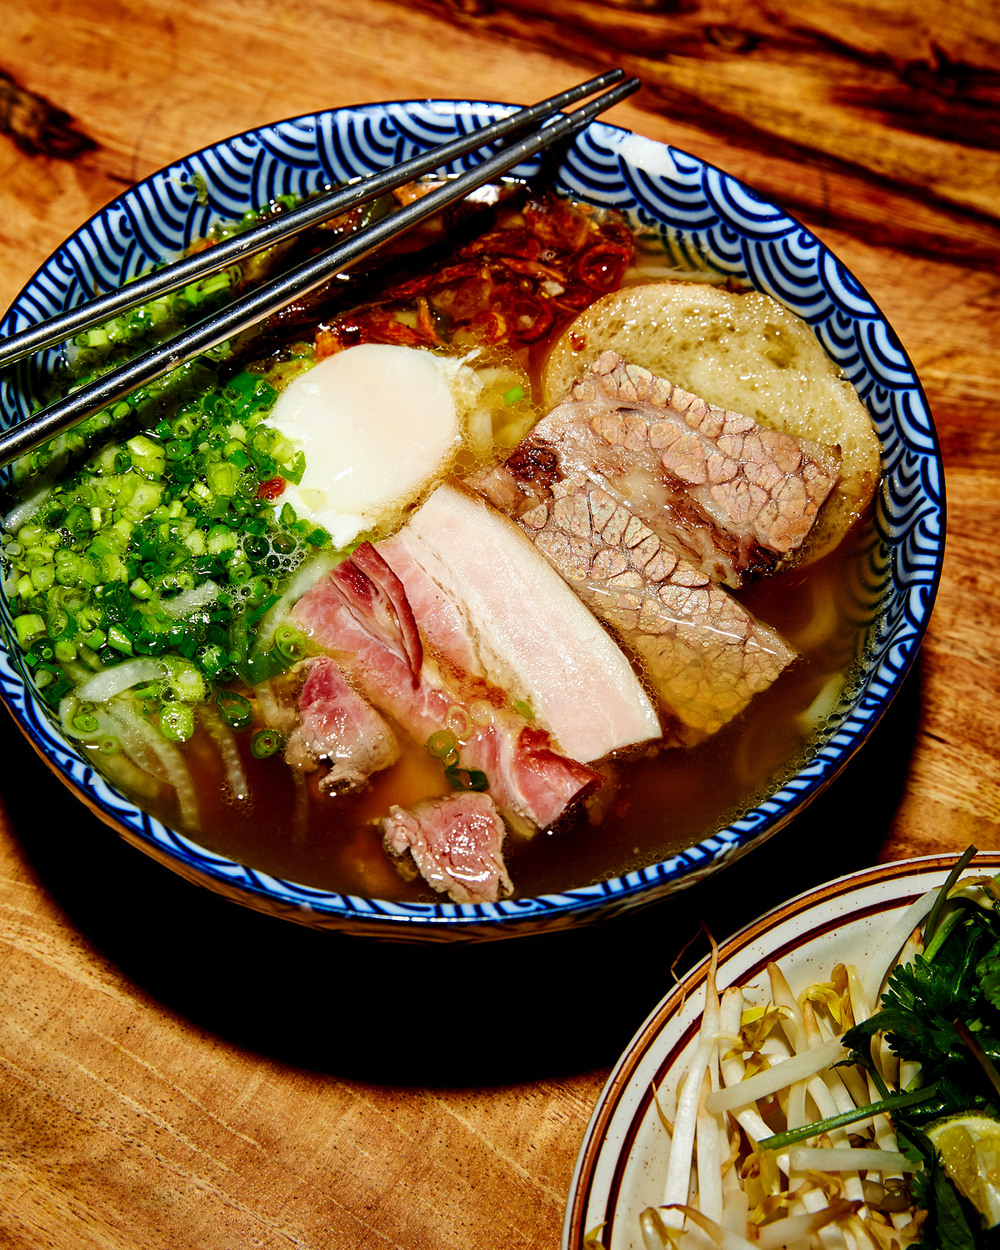 P&L PHO (BIG ISLAND BEEF) AT THE PIG AND THE LADY